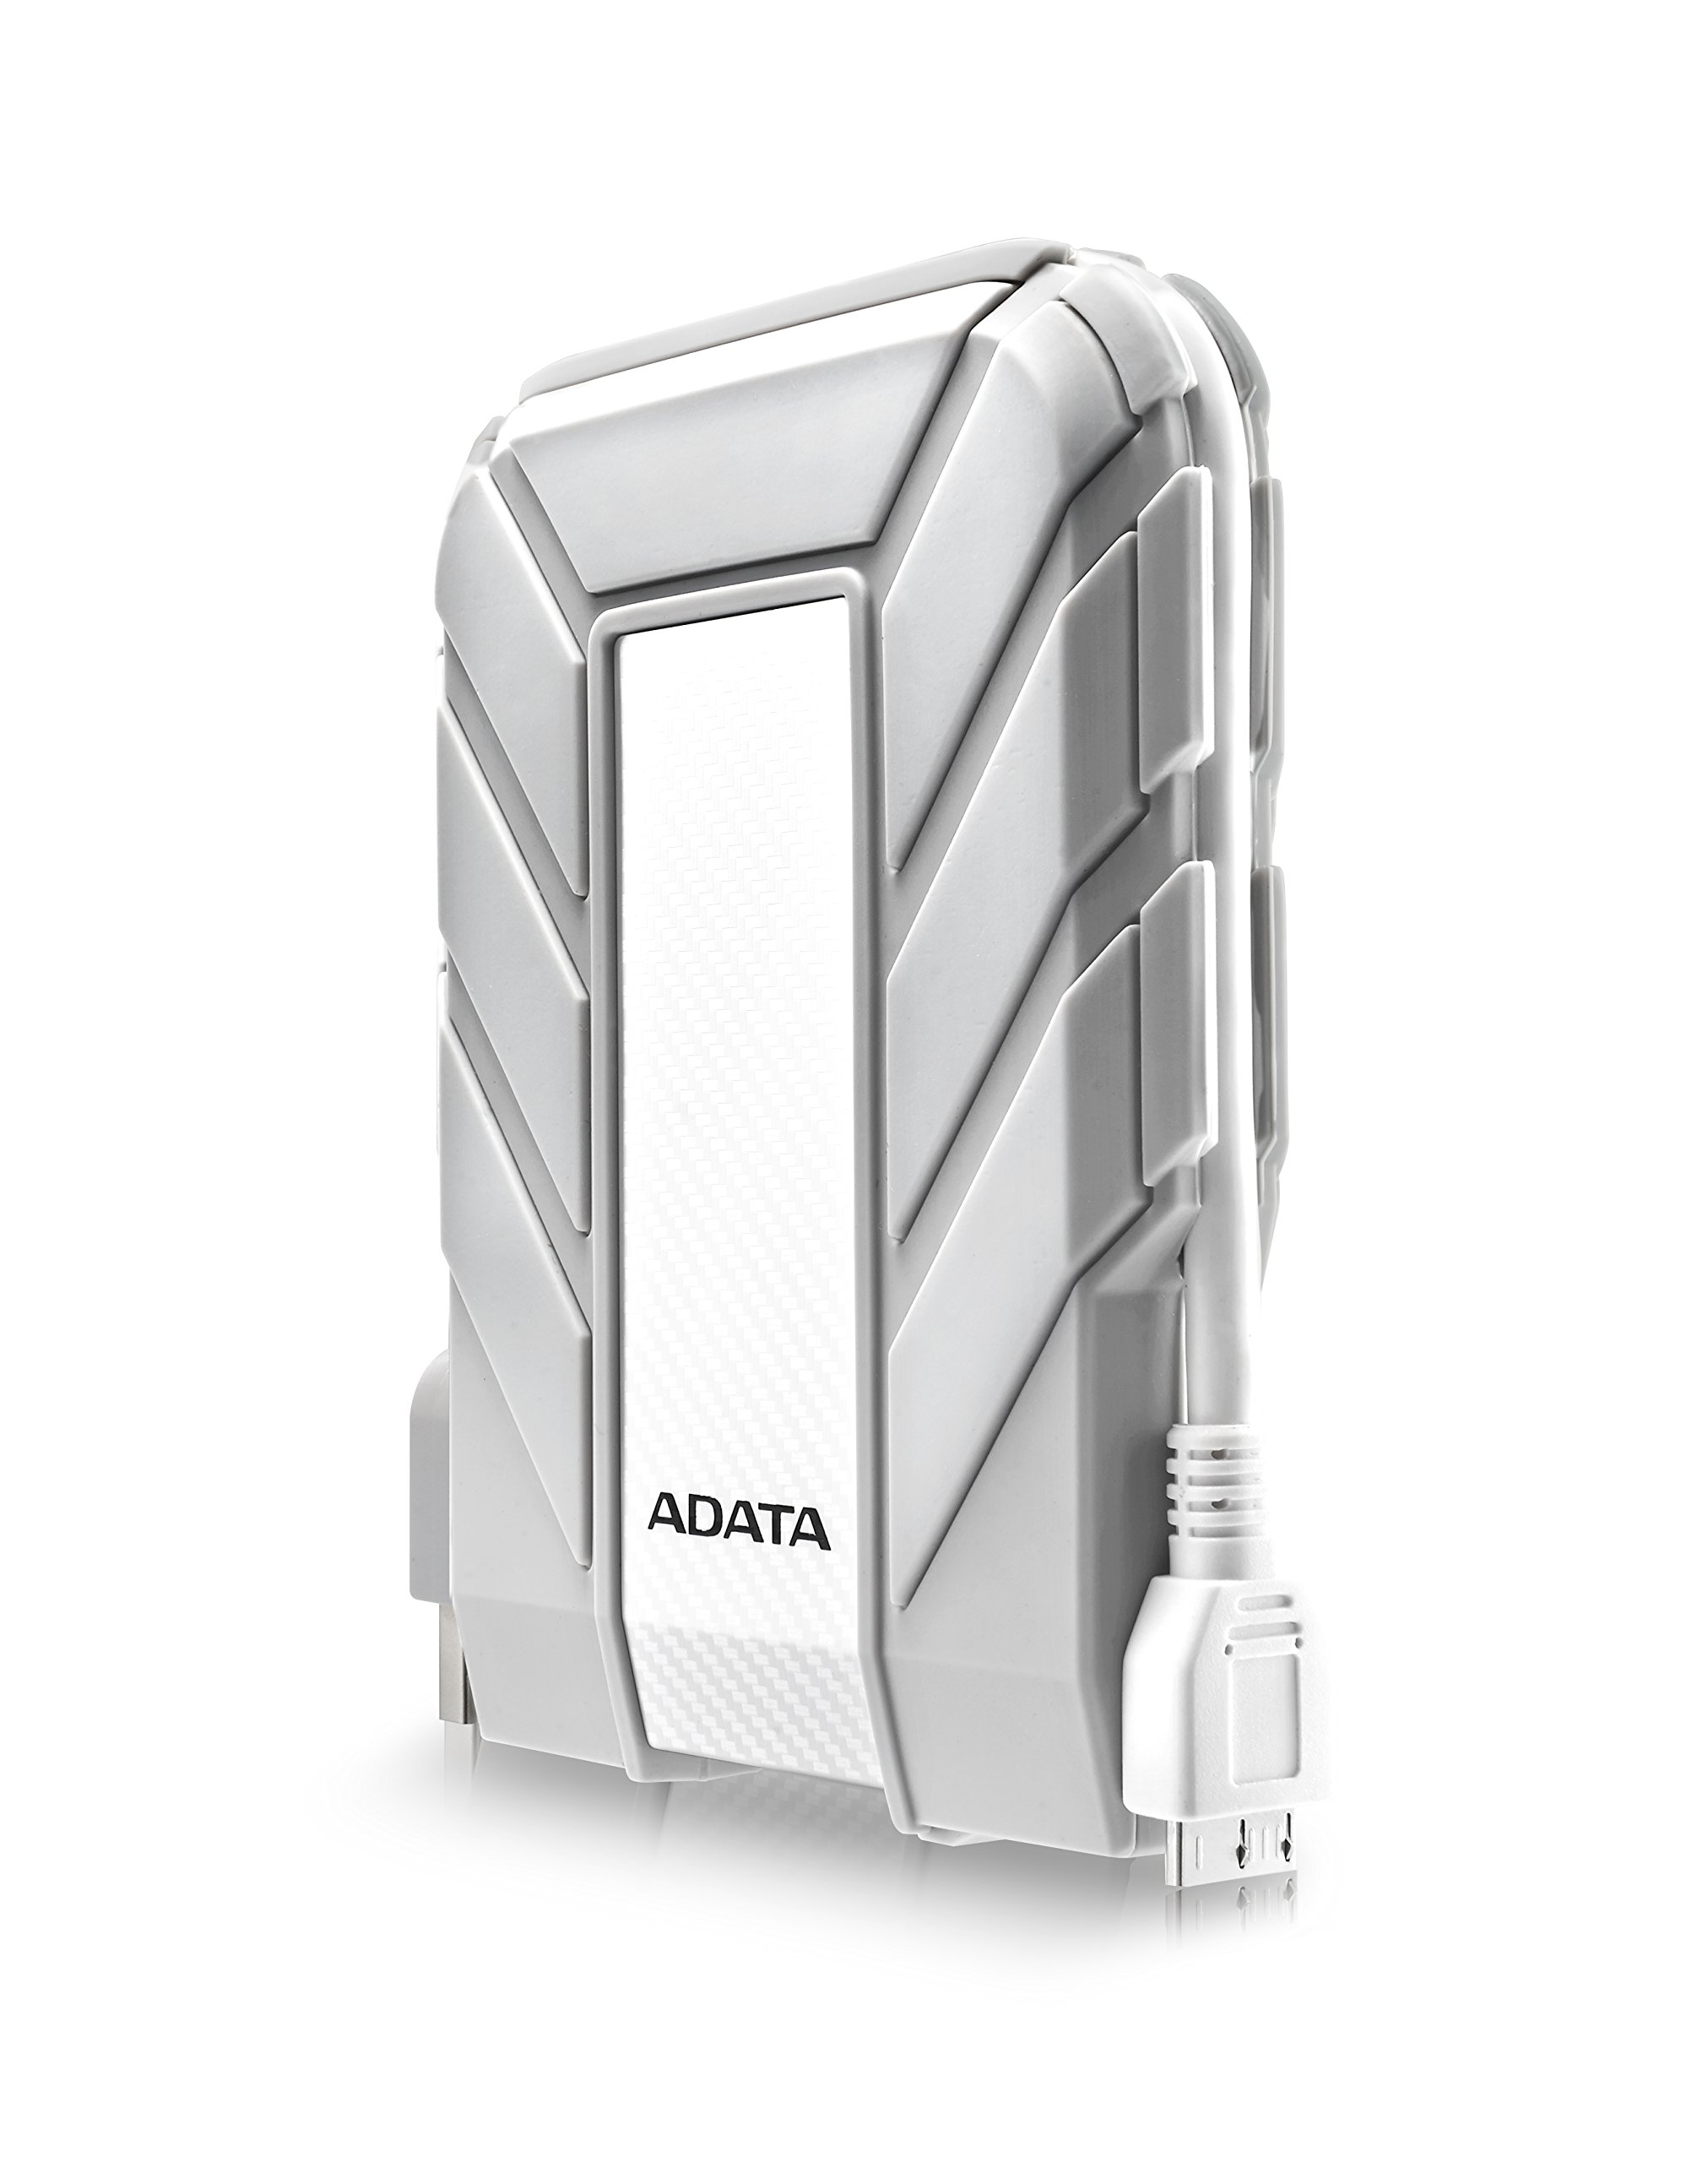 ADATA HD710A 2TB USB 3.0 Waterproof/ Dustproof/ Shock-Resistant Exlusive for Mac External Hard Drive, White (AHD710A-2TU3-CWH) by ADATA (Image #1)